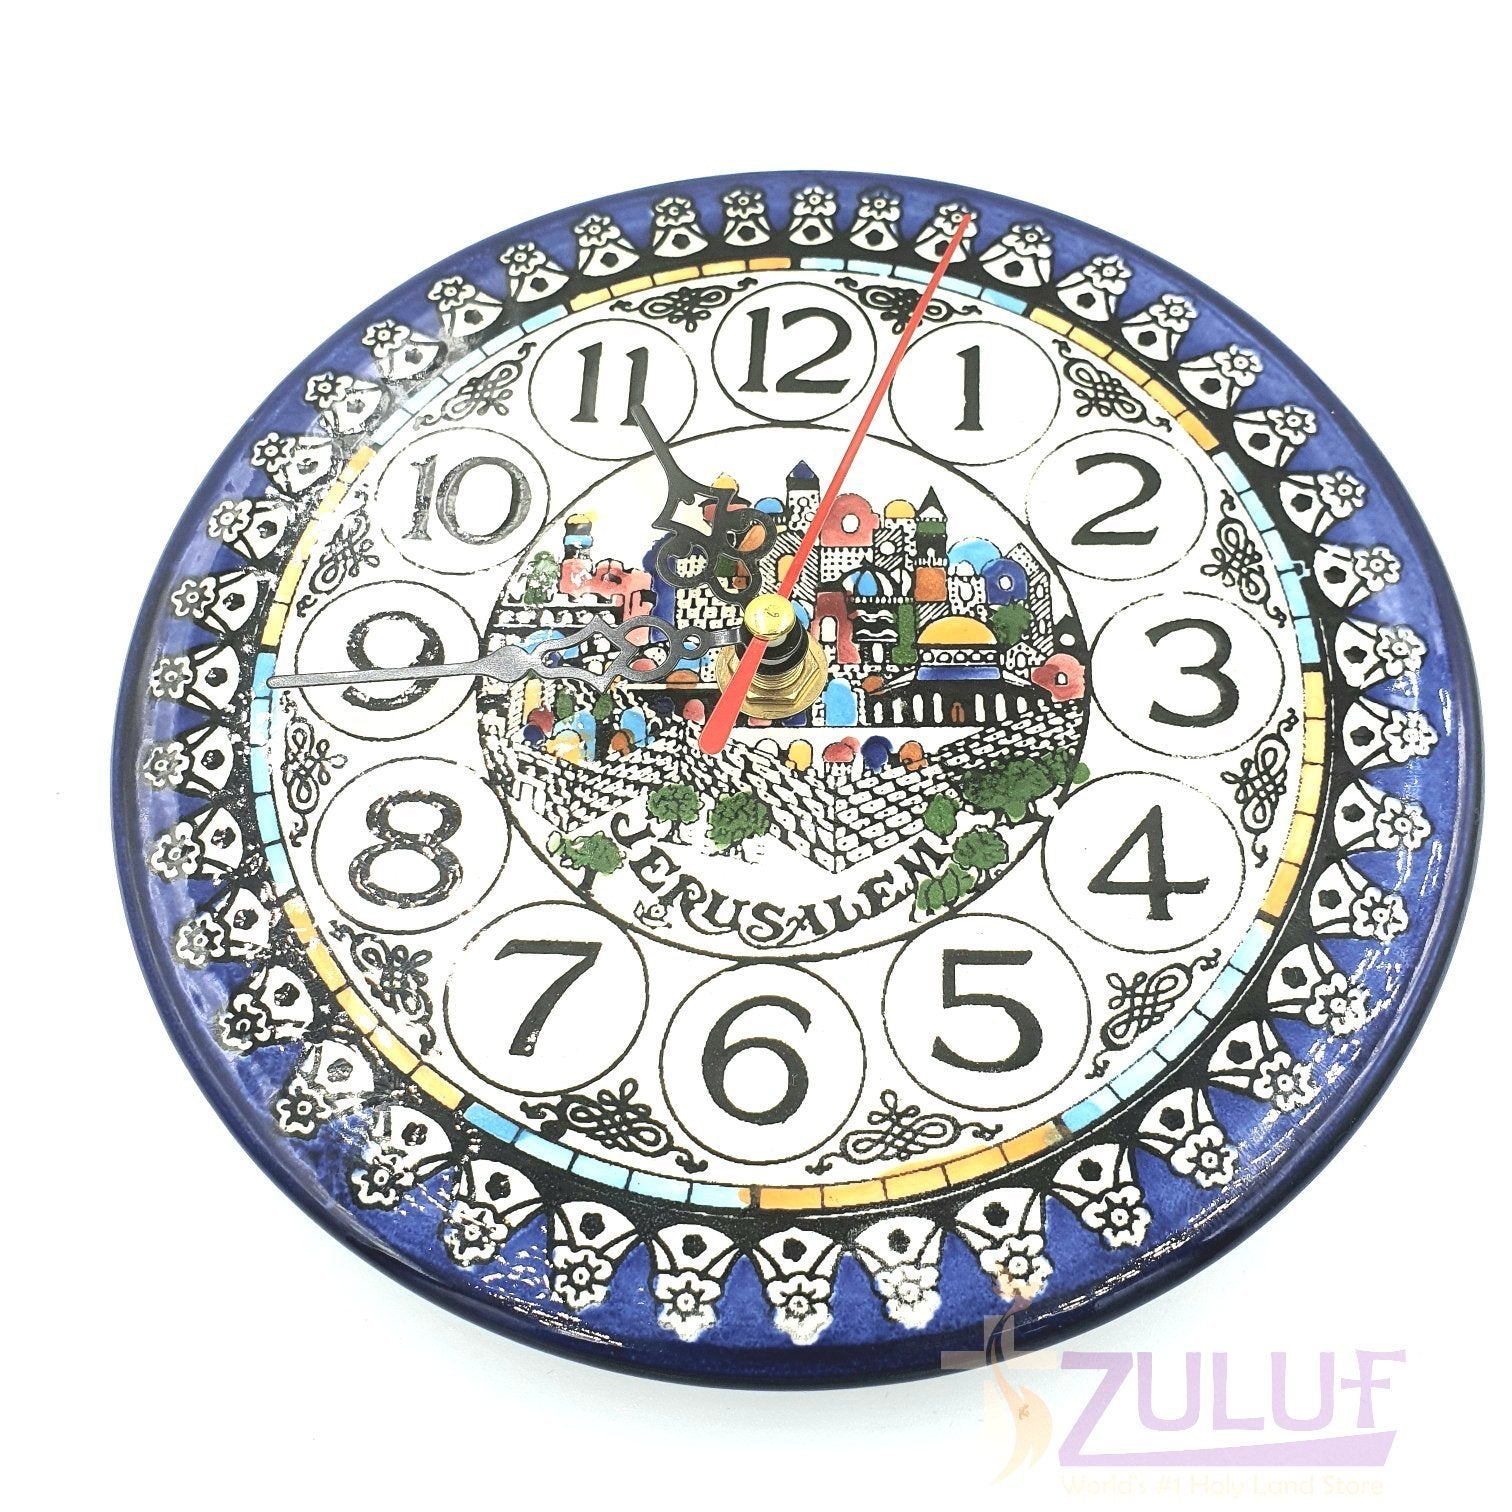 Ceramic Armenian Wall Clock Judaica Gift Jerusalem Holy Land Gift for Home 16cm / 6 Inches CER034 - Zuluf